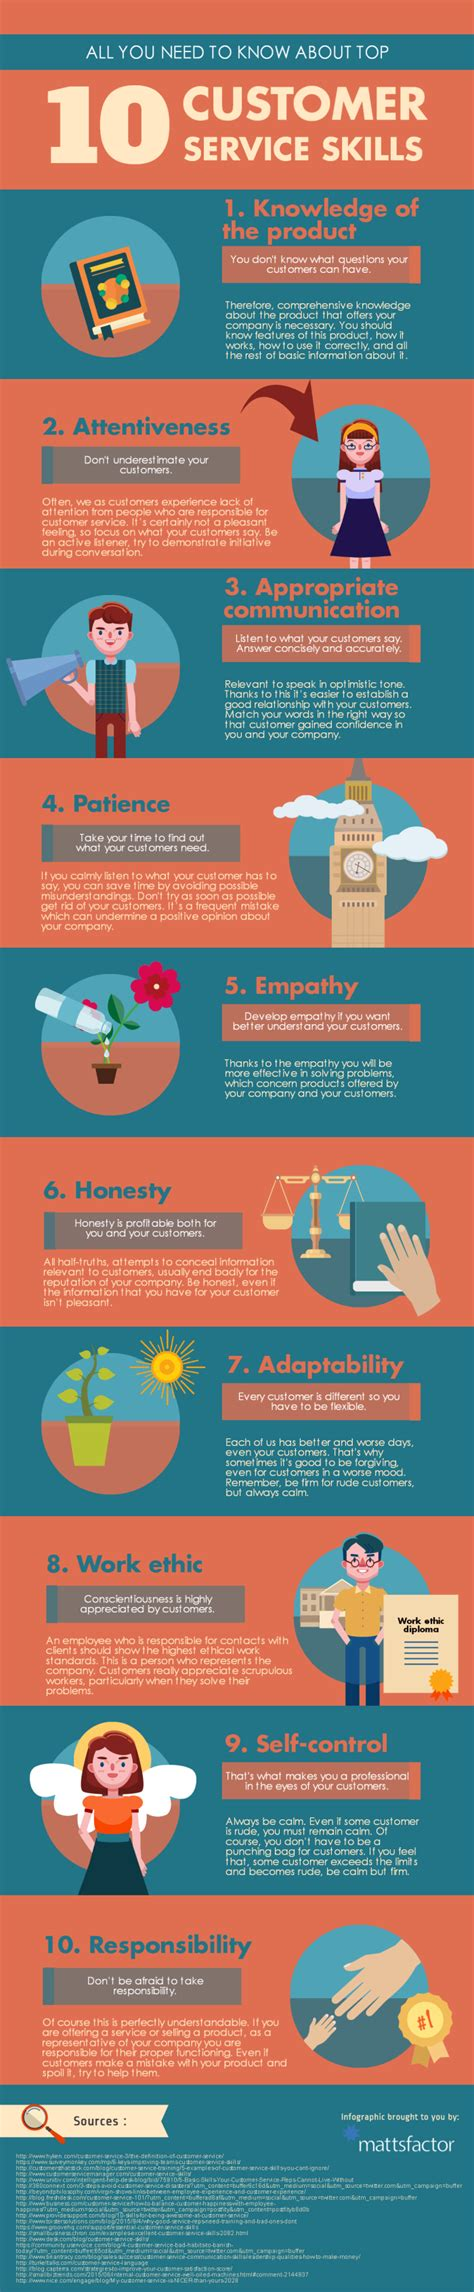 All You Need Know About Top Customer Service Skills